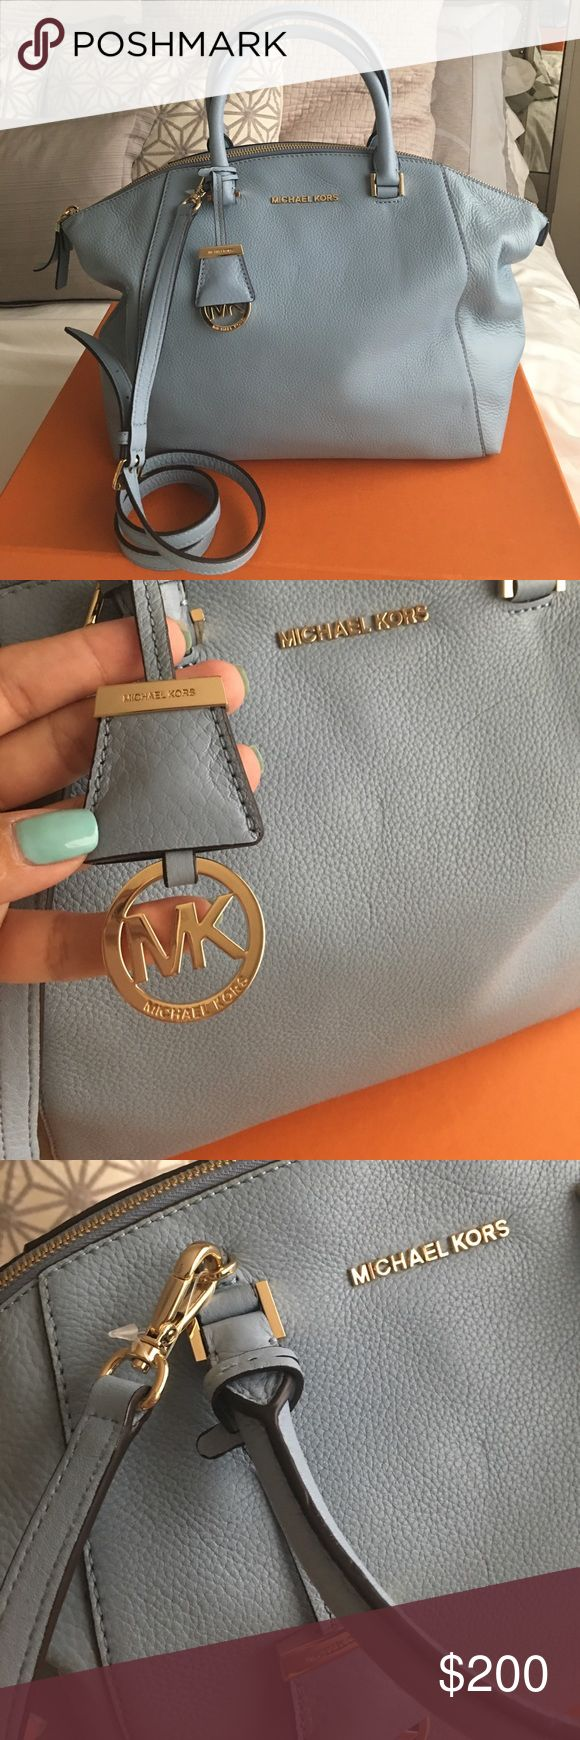 """Authentic Michael Kors Crossbody handbag Brand new, never used. No tags attached. Bought at Bloomingdales by my mother in law. Color is """"Denim"""". You have to forgive me, I don't know the name of the bag, I am not familiar with Michael Kors. You can use it as crossbody or just a tote. Very roomy. It has a pocket outside as well. Michael Kors Bags Crossbody Bags"""